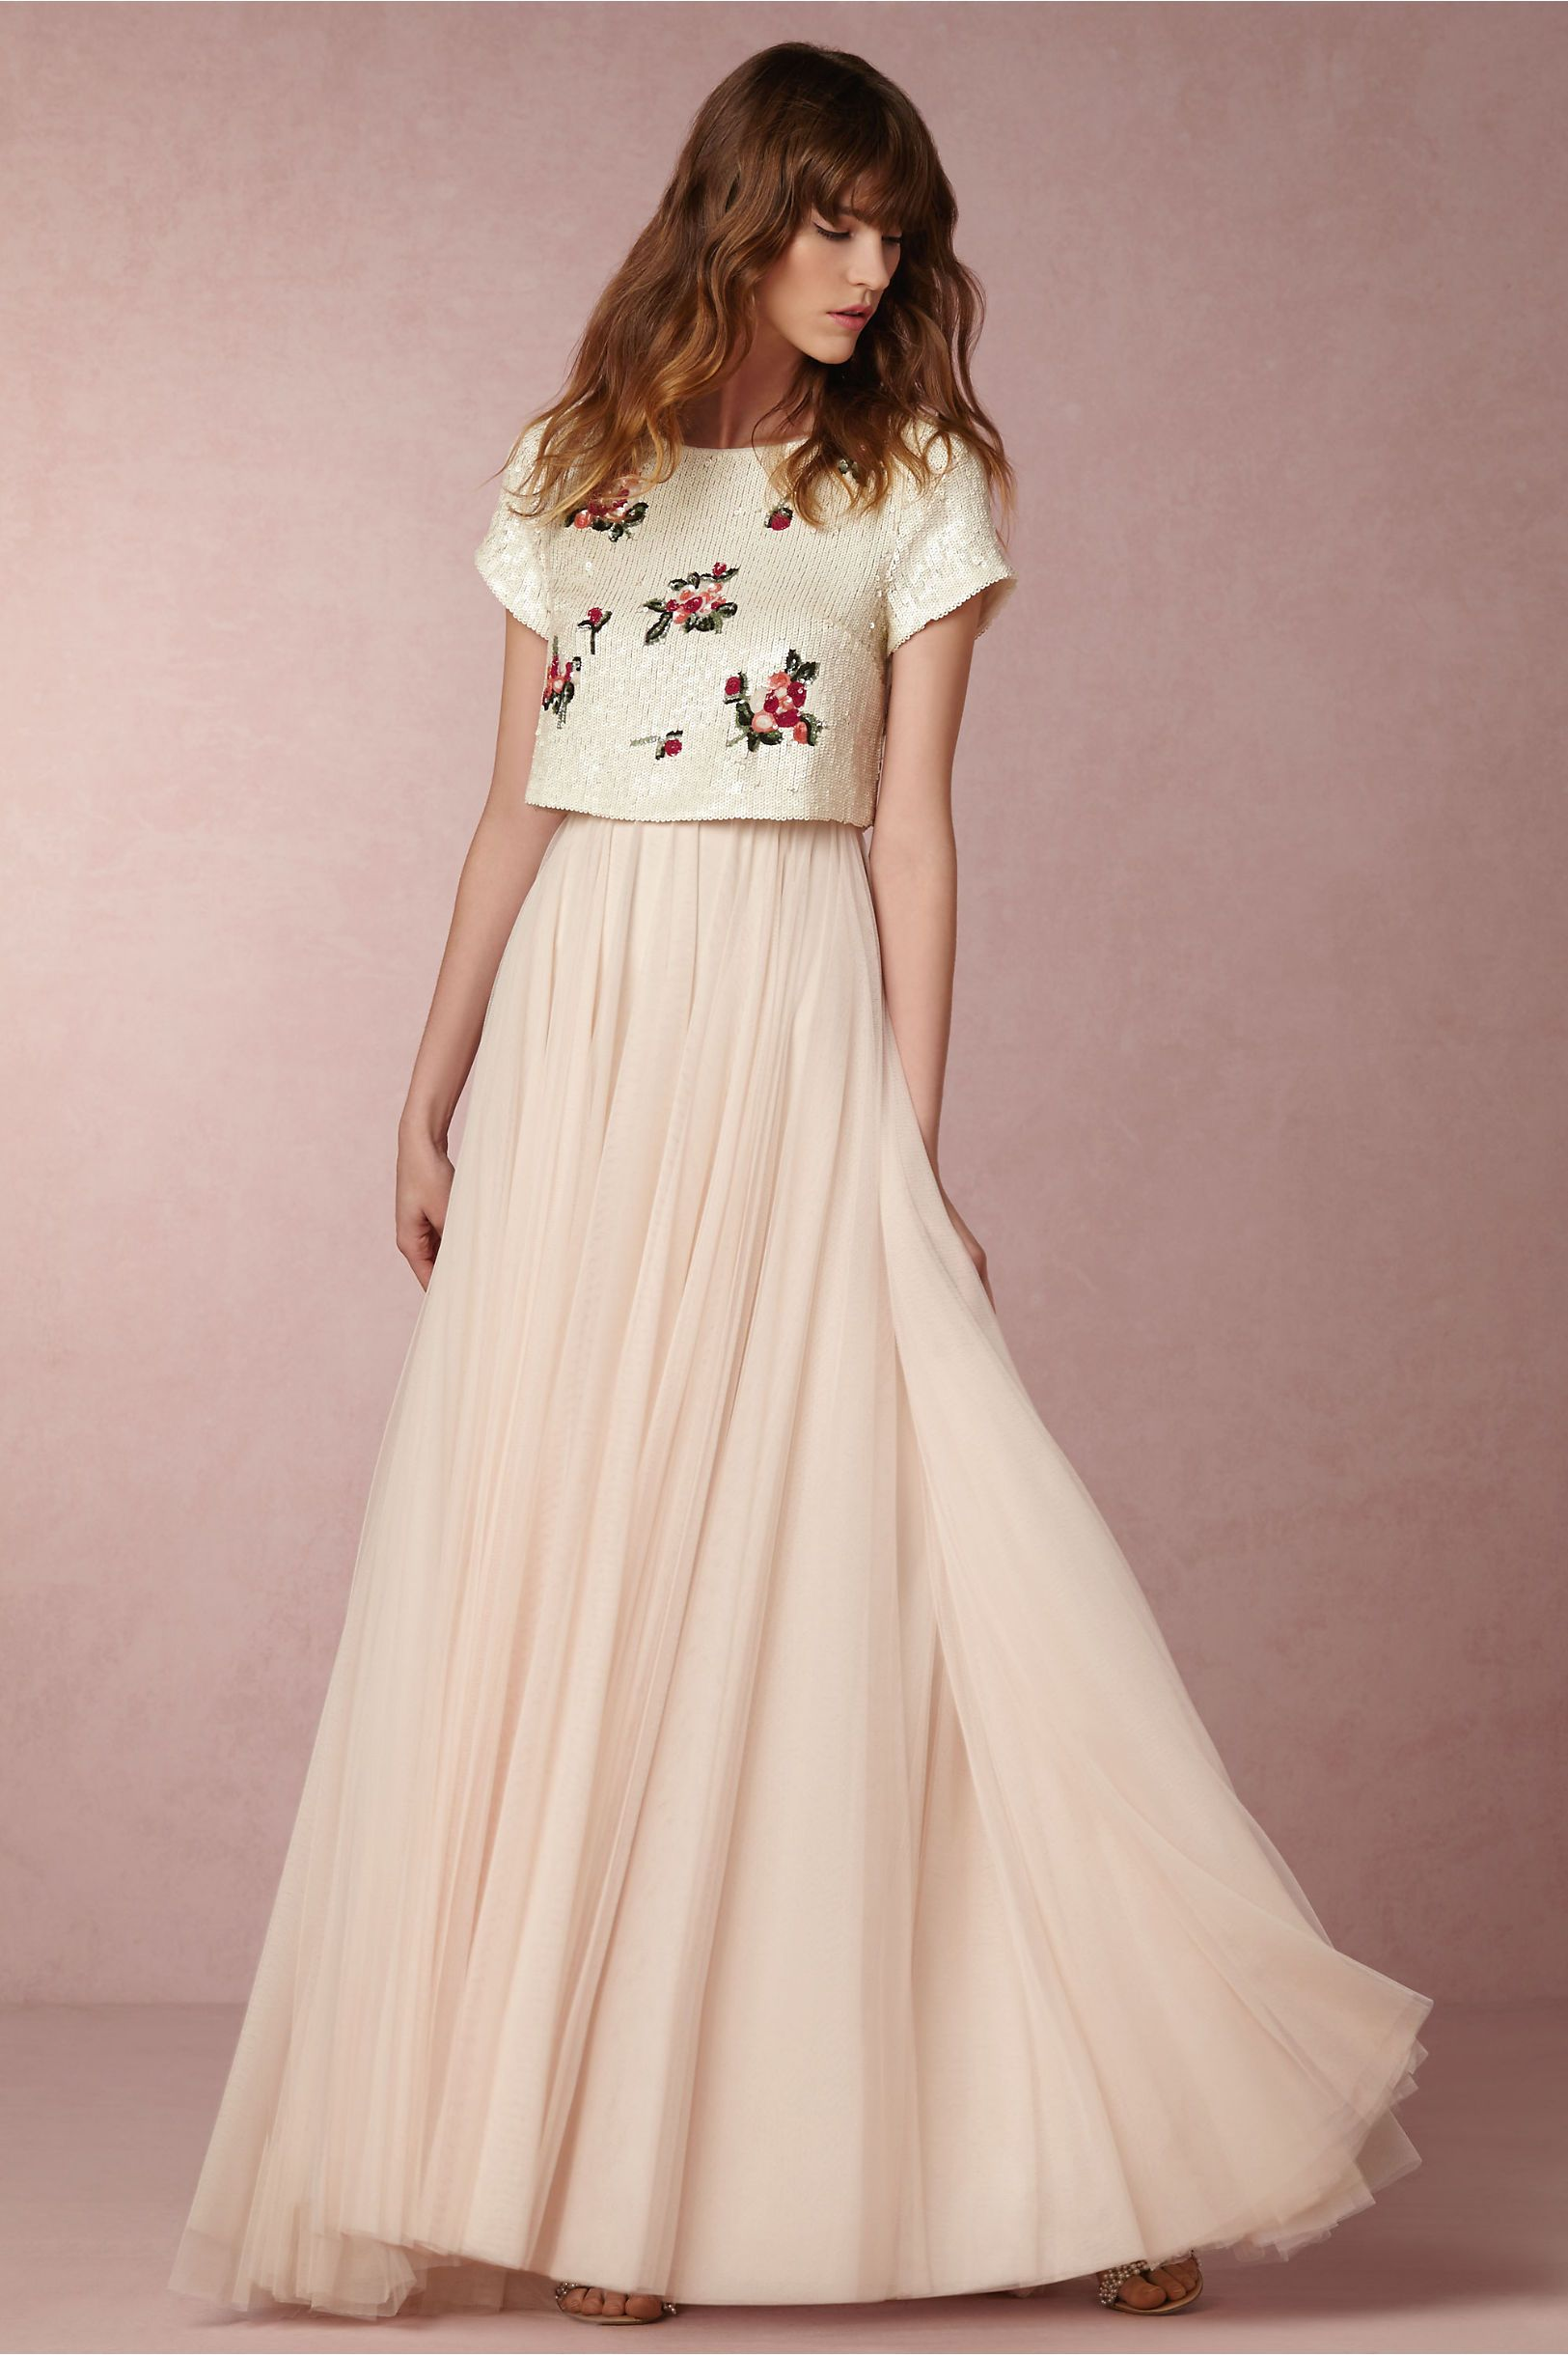 BHLDN Tulley Top in Shoes & Accessories Cover Ups at BHLDN | L&B ...